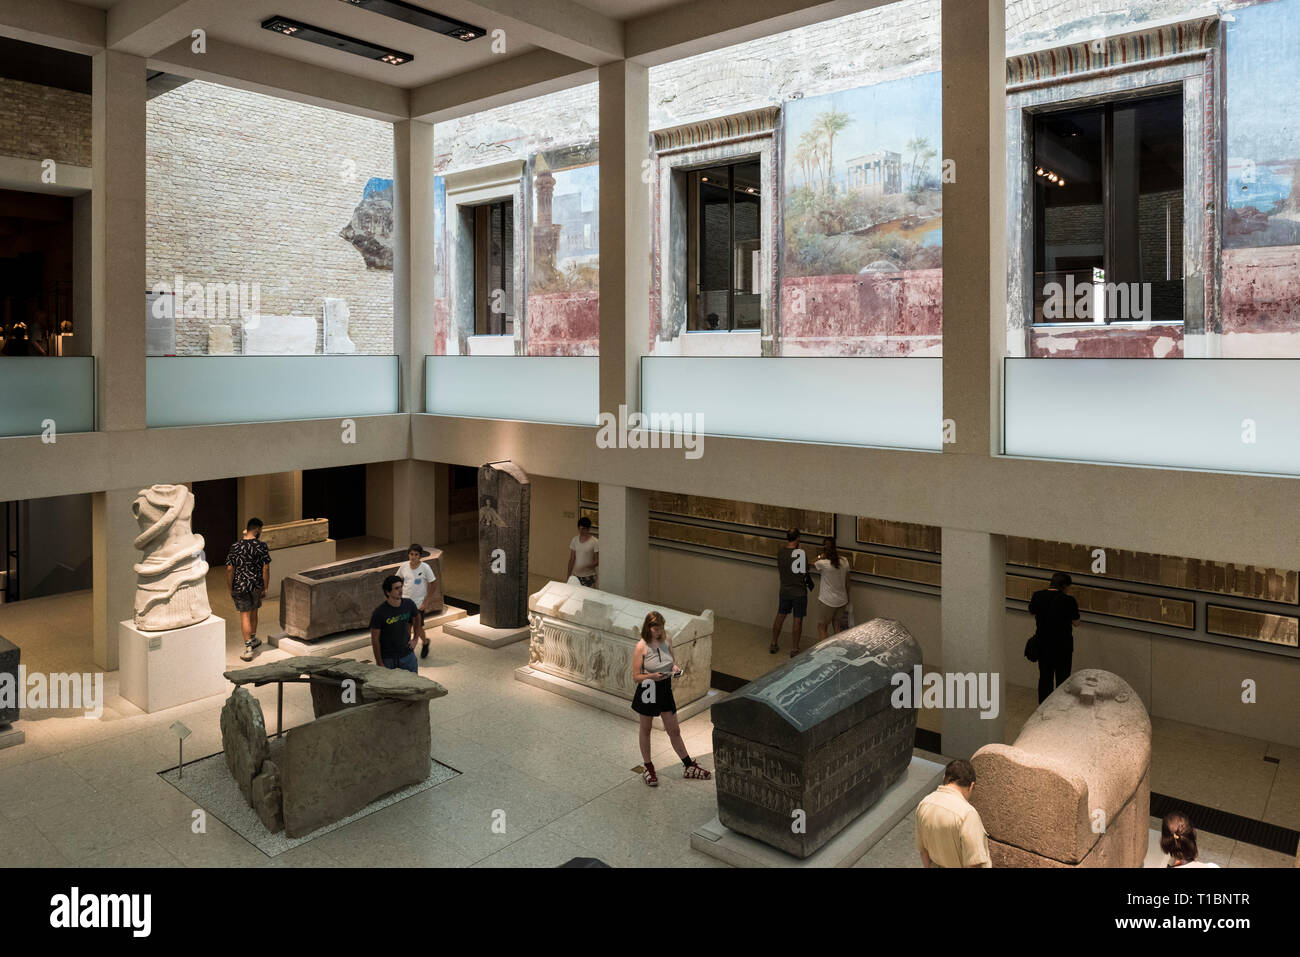 Berlin. Germany. The Neues Museum (New Museum), Museum Island, the Egyptian Courtyard.  The Neues Museum exhibits the collections of the Egyptian Muse Stock Photo